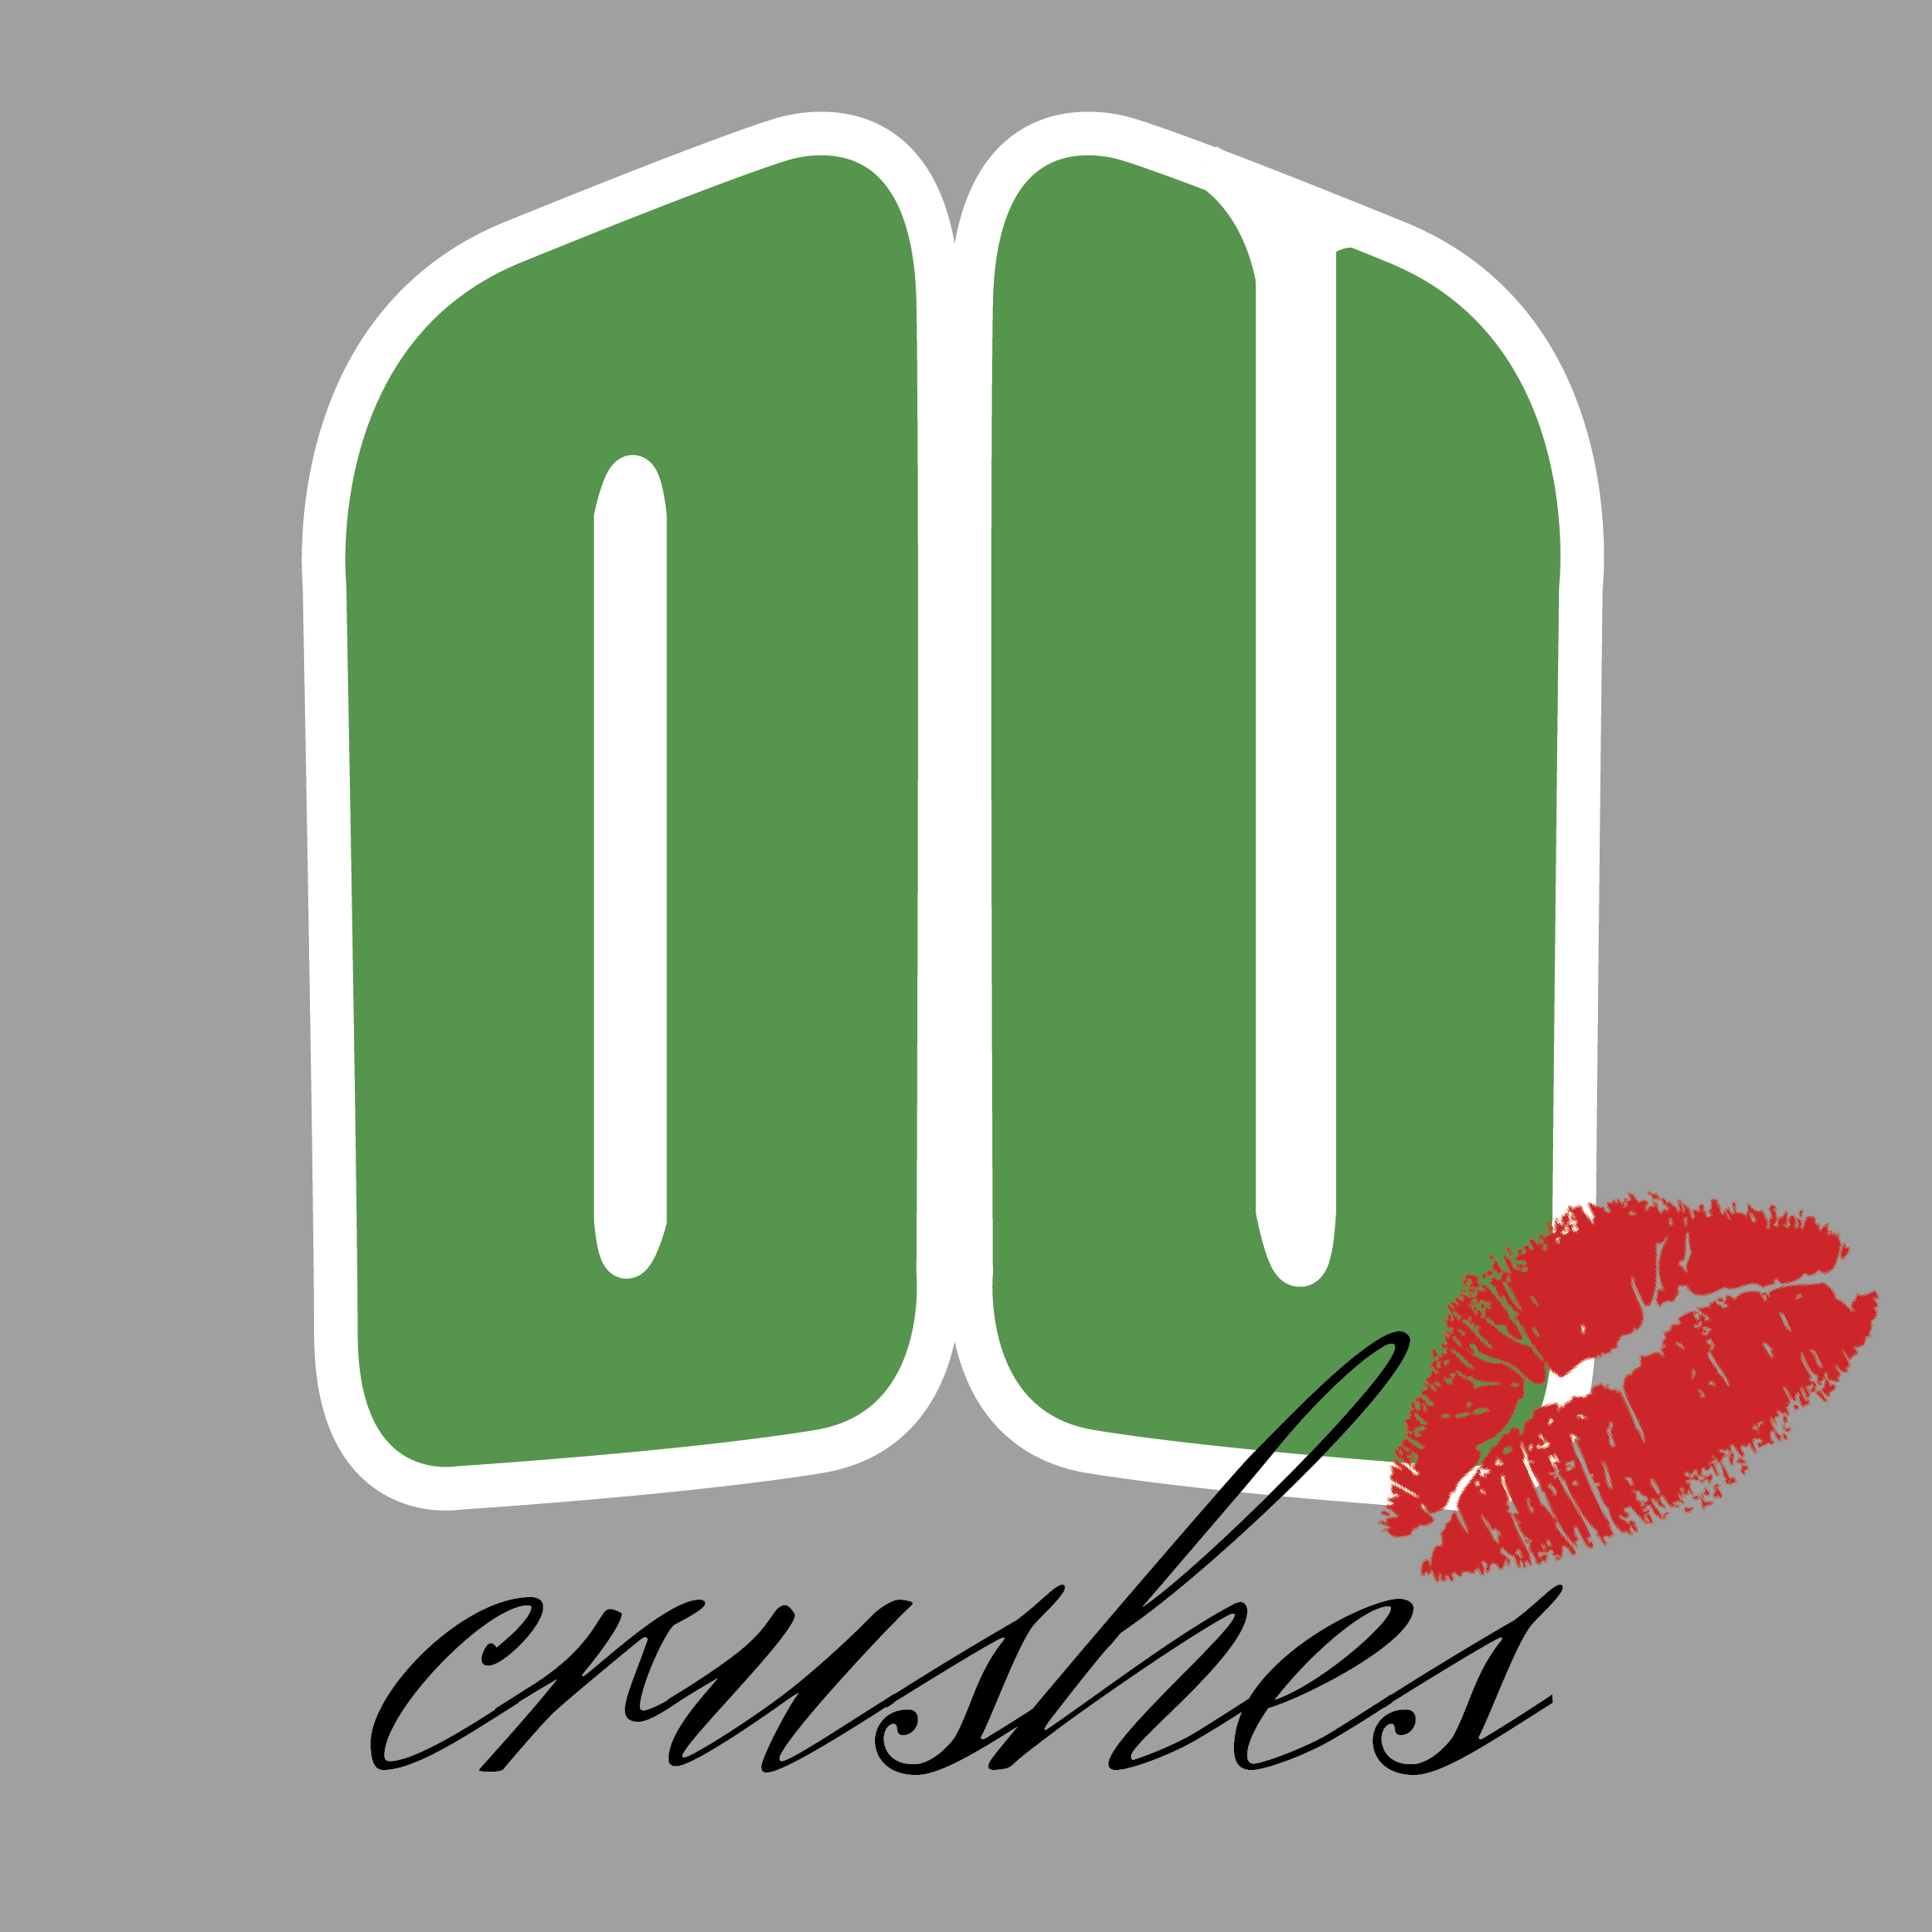 OUCrushes